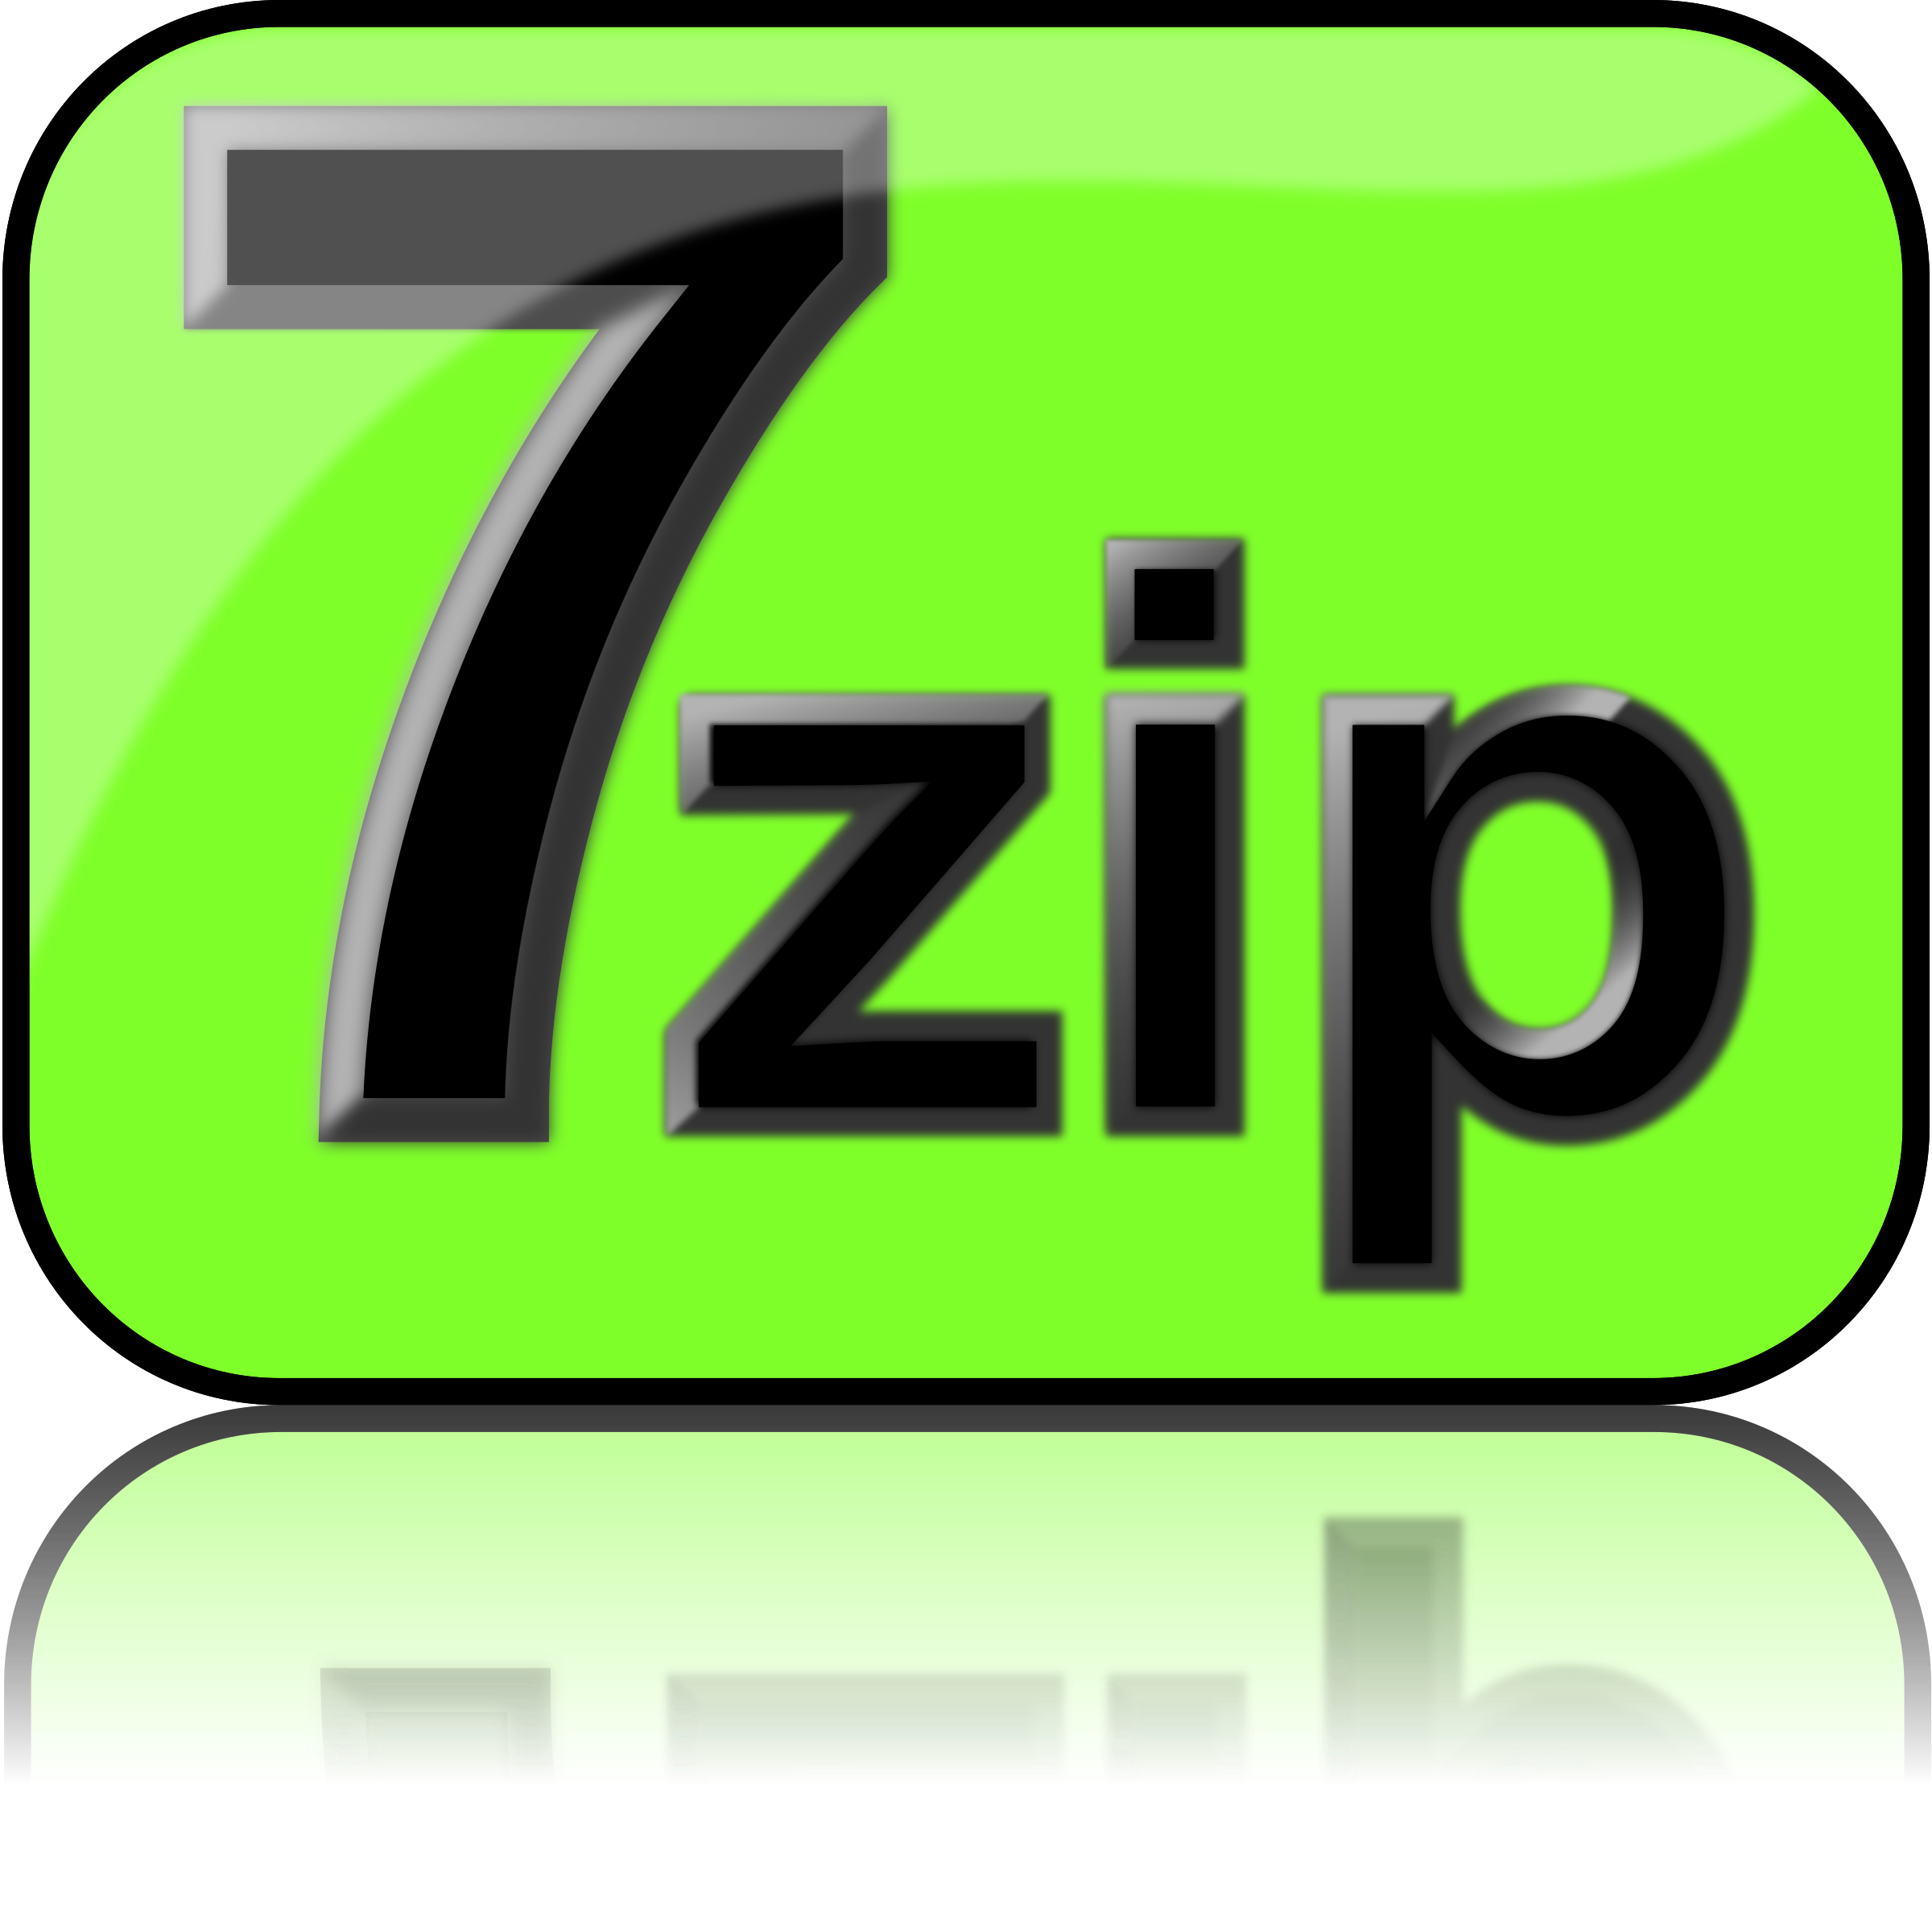 7zip Glossy Extrude Green by kg